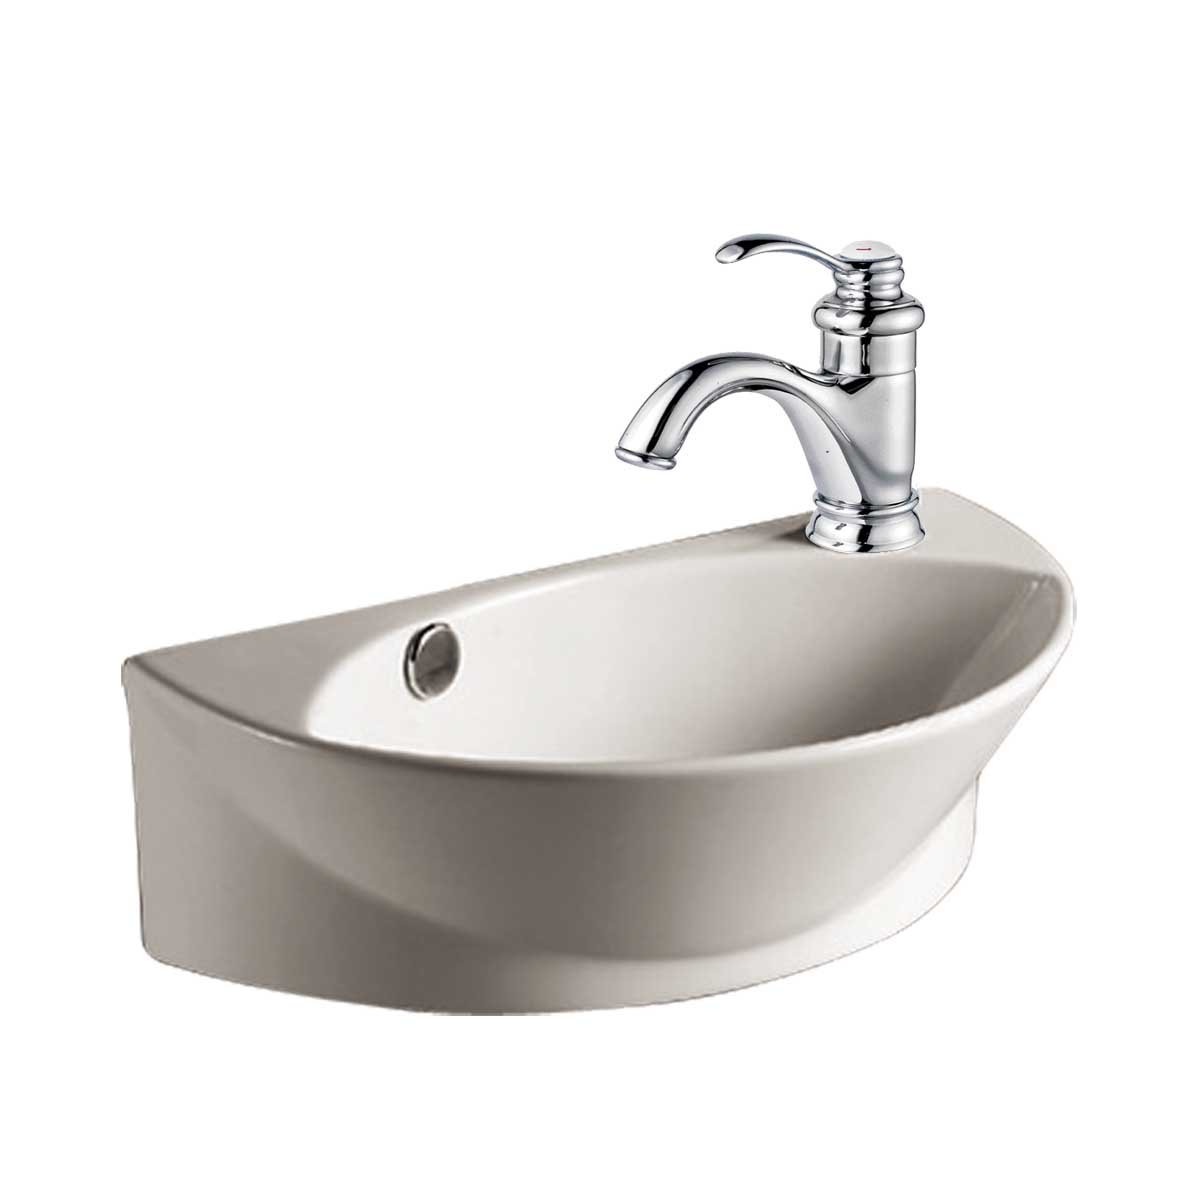 Merveilleux White Small Wall Mount Sink With Single Faucet Hole Overflow Bathroom Sink      Amazon.com